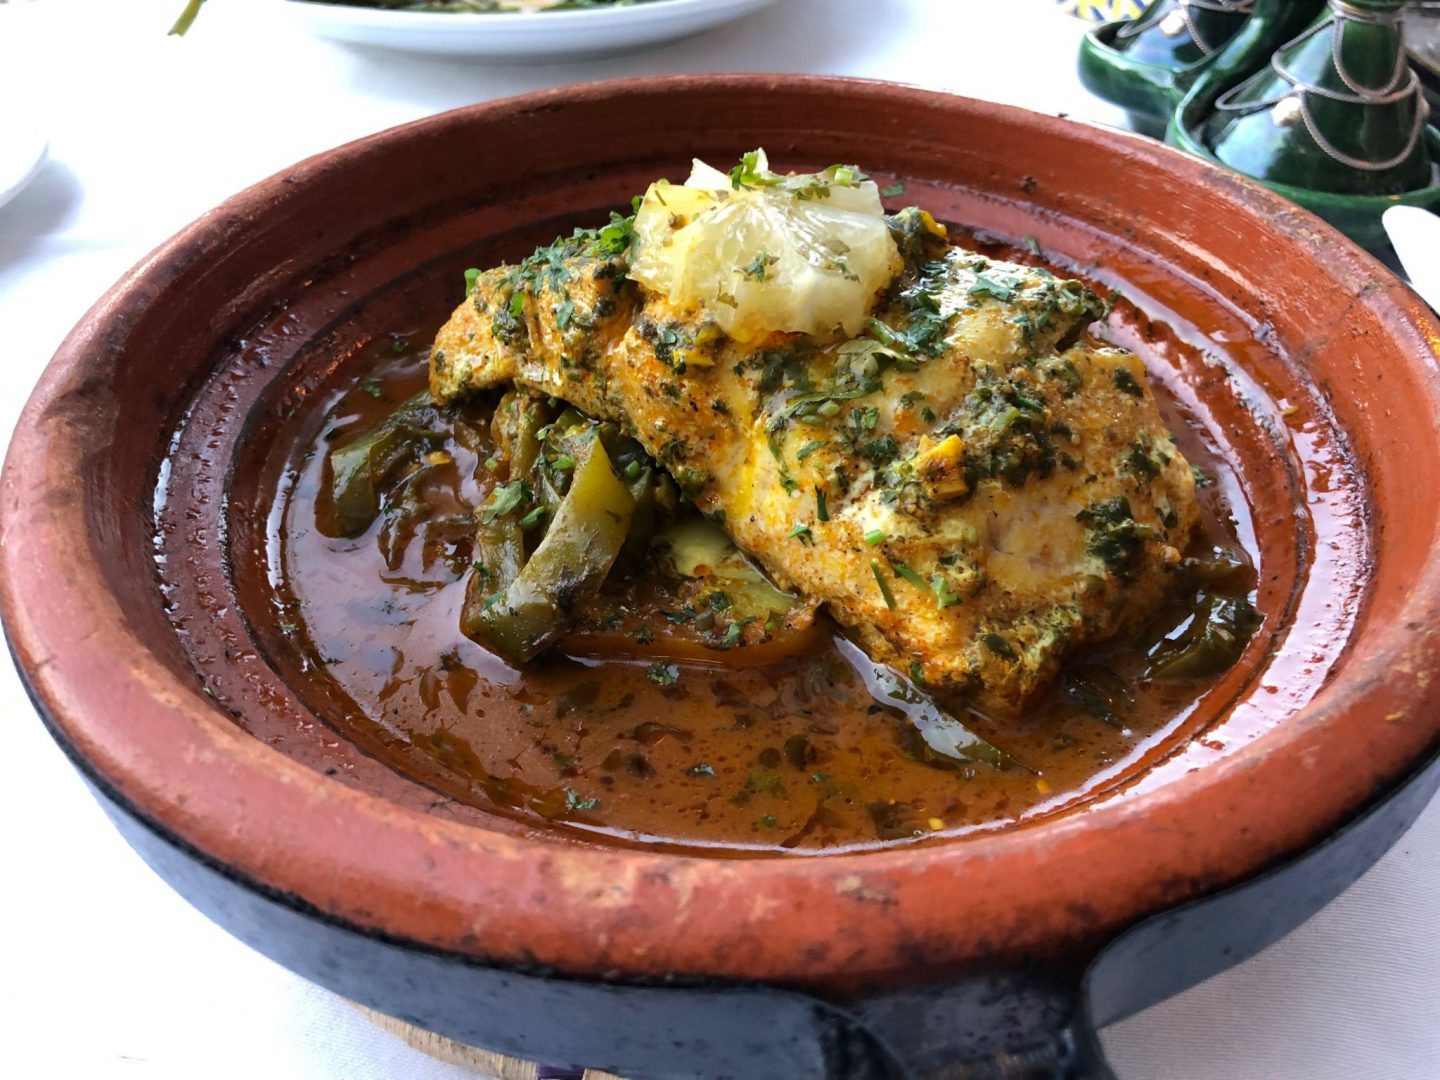 Fish Tagine at Kasbah Bab Ourika